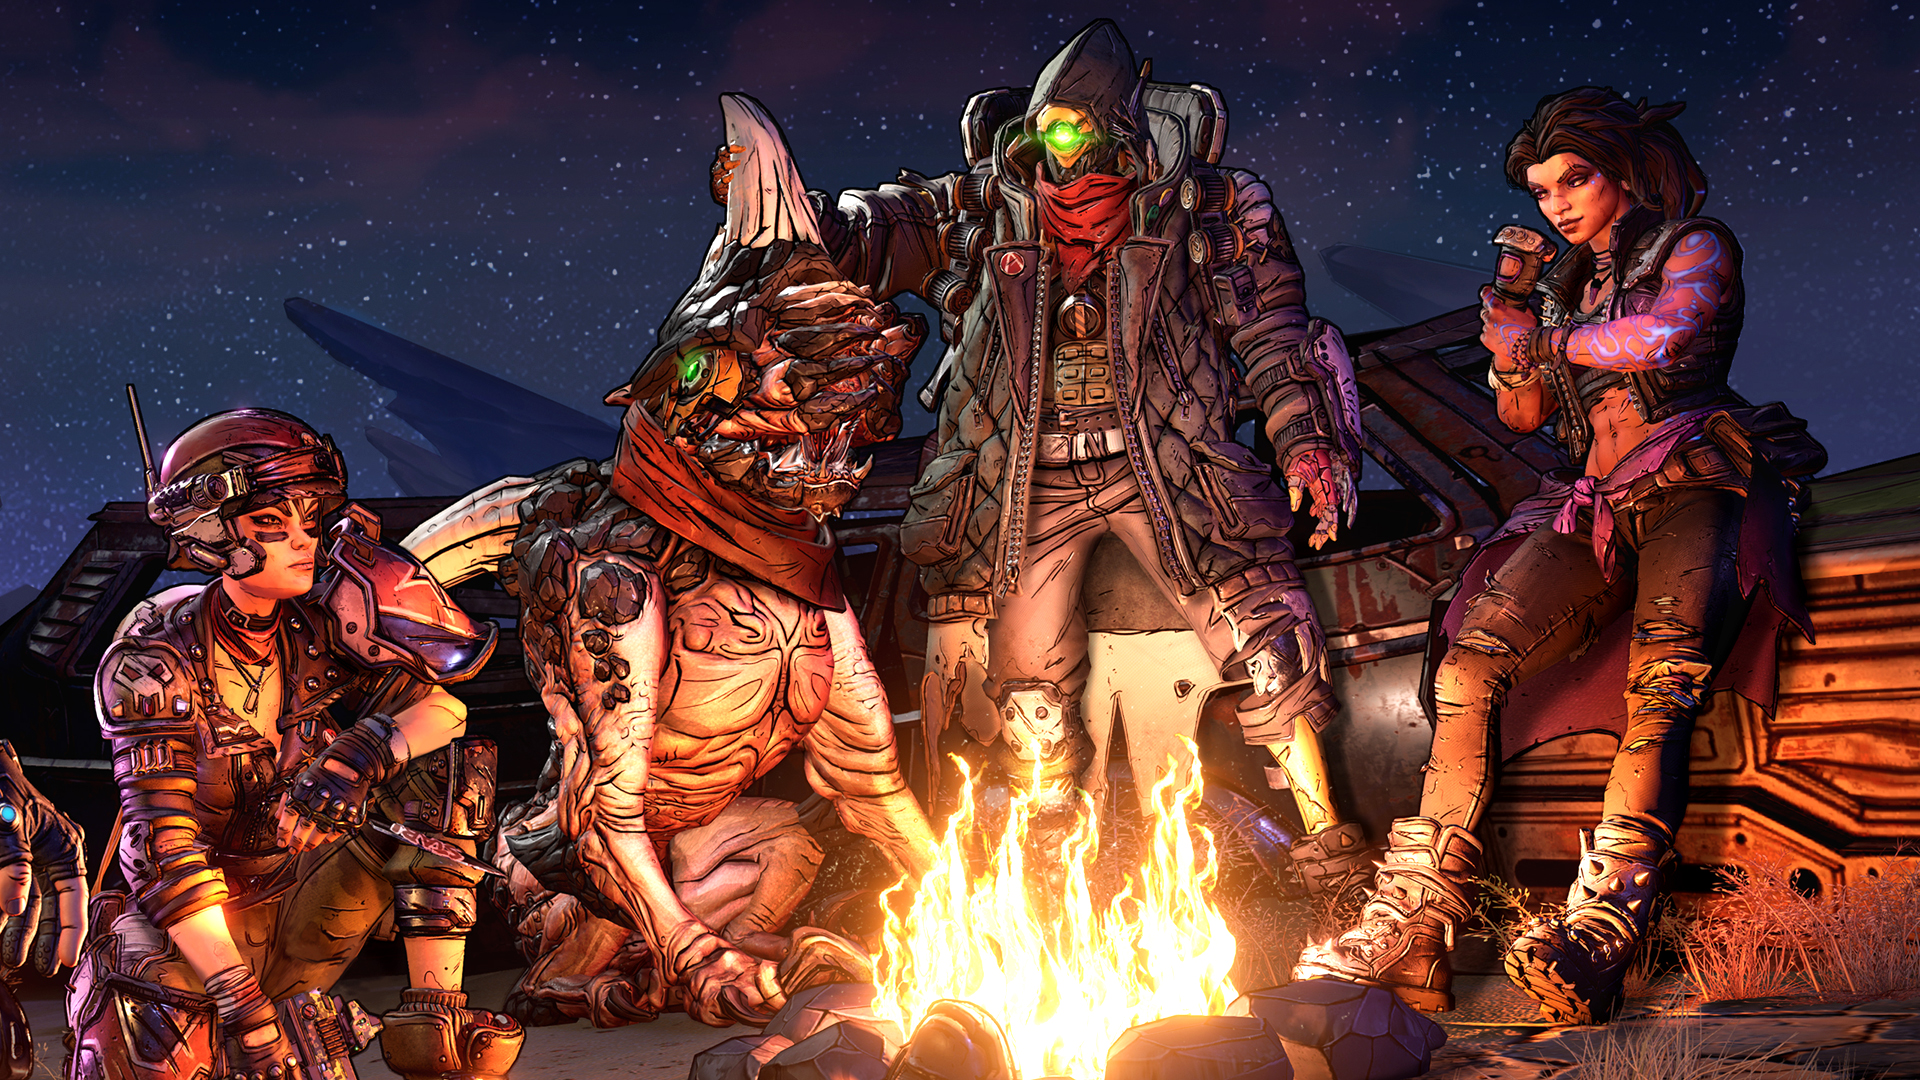 Borderlands 3 will reveal a new planet and vault hunter at E3